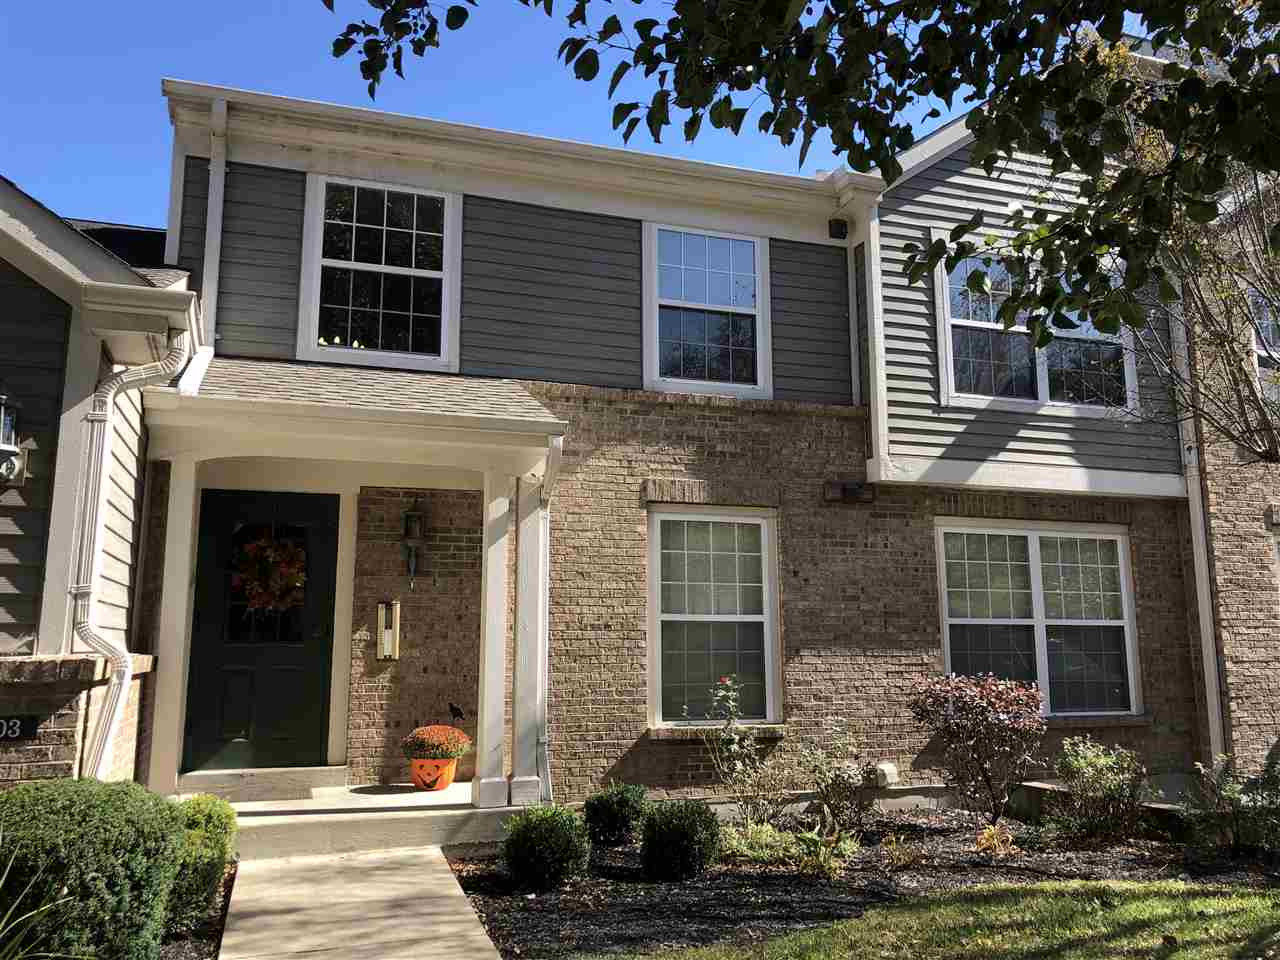 Photo 2 for 2103 Clareglen Ct, 101 Crescent Springs, KY 41017